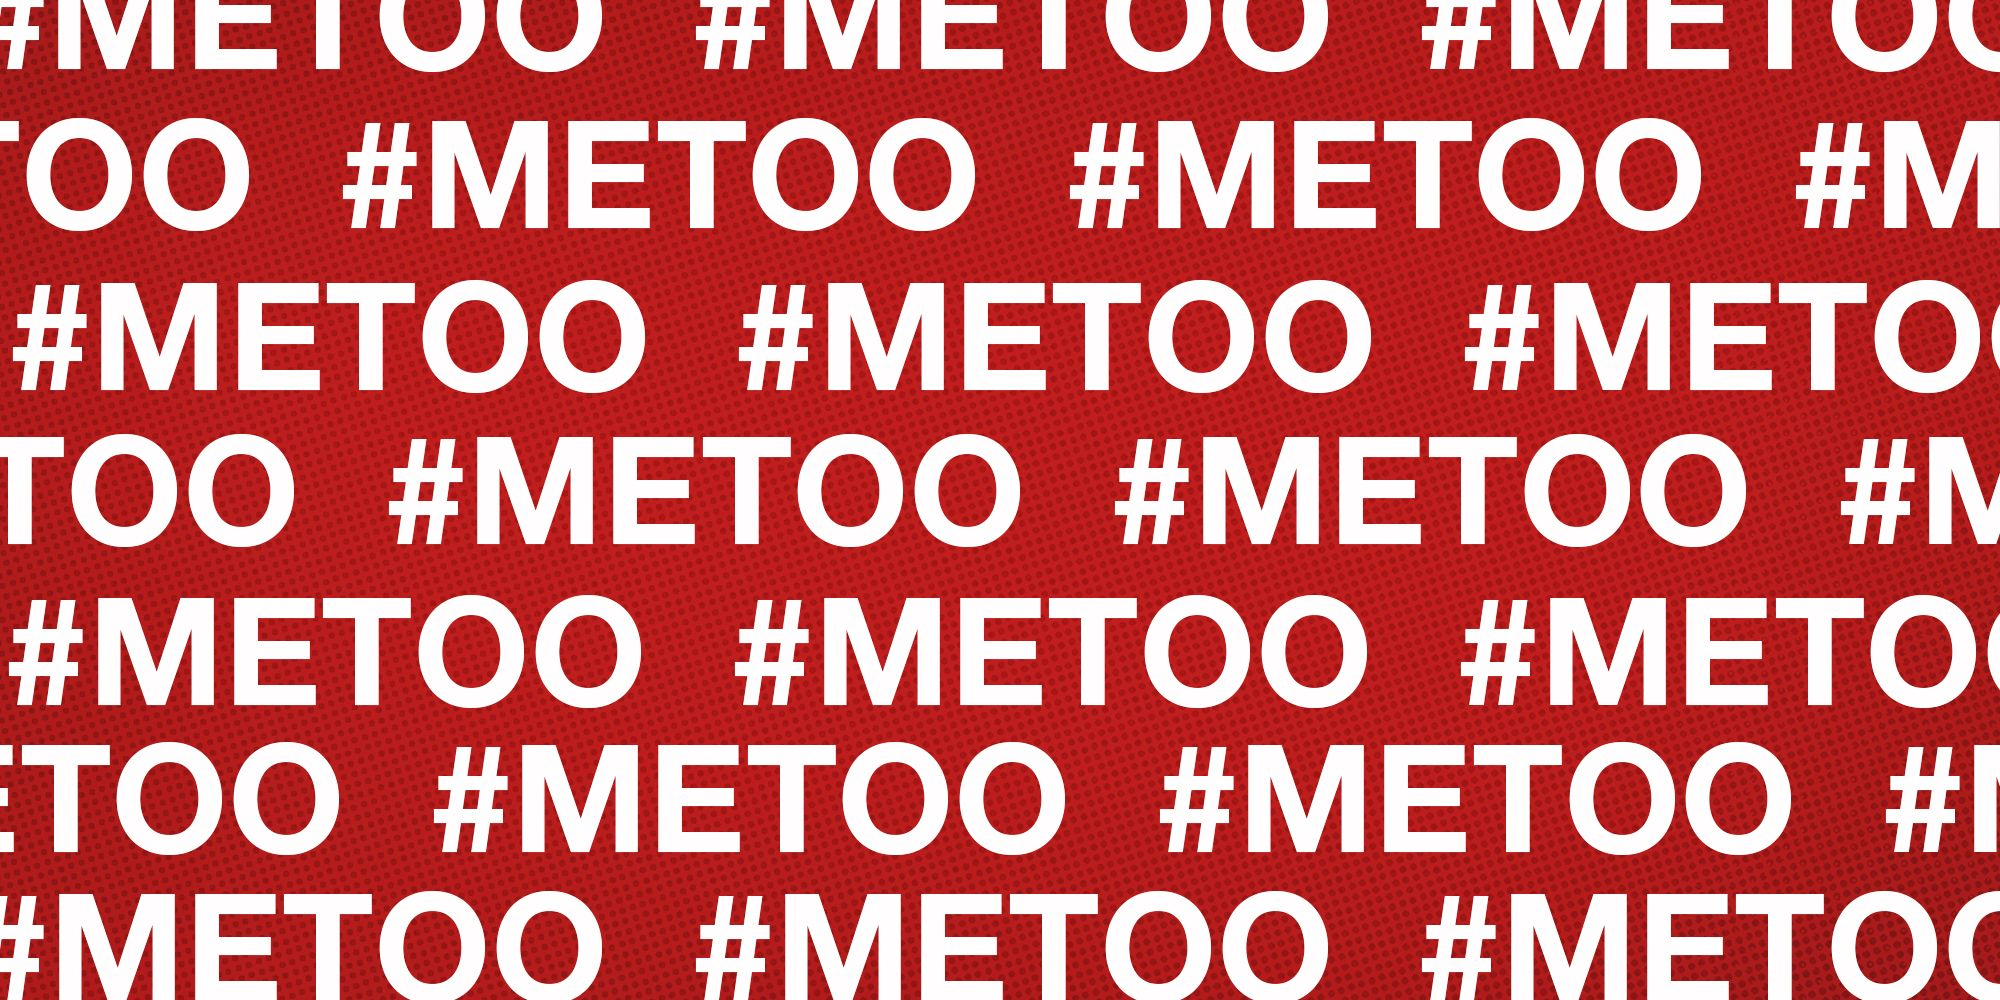 The #MeToo Backlash Is Already Here  This Is How We Stop It